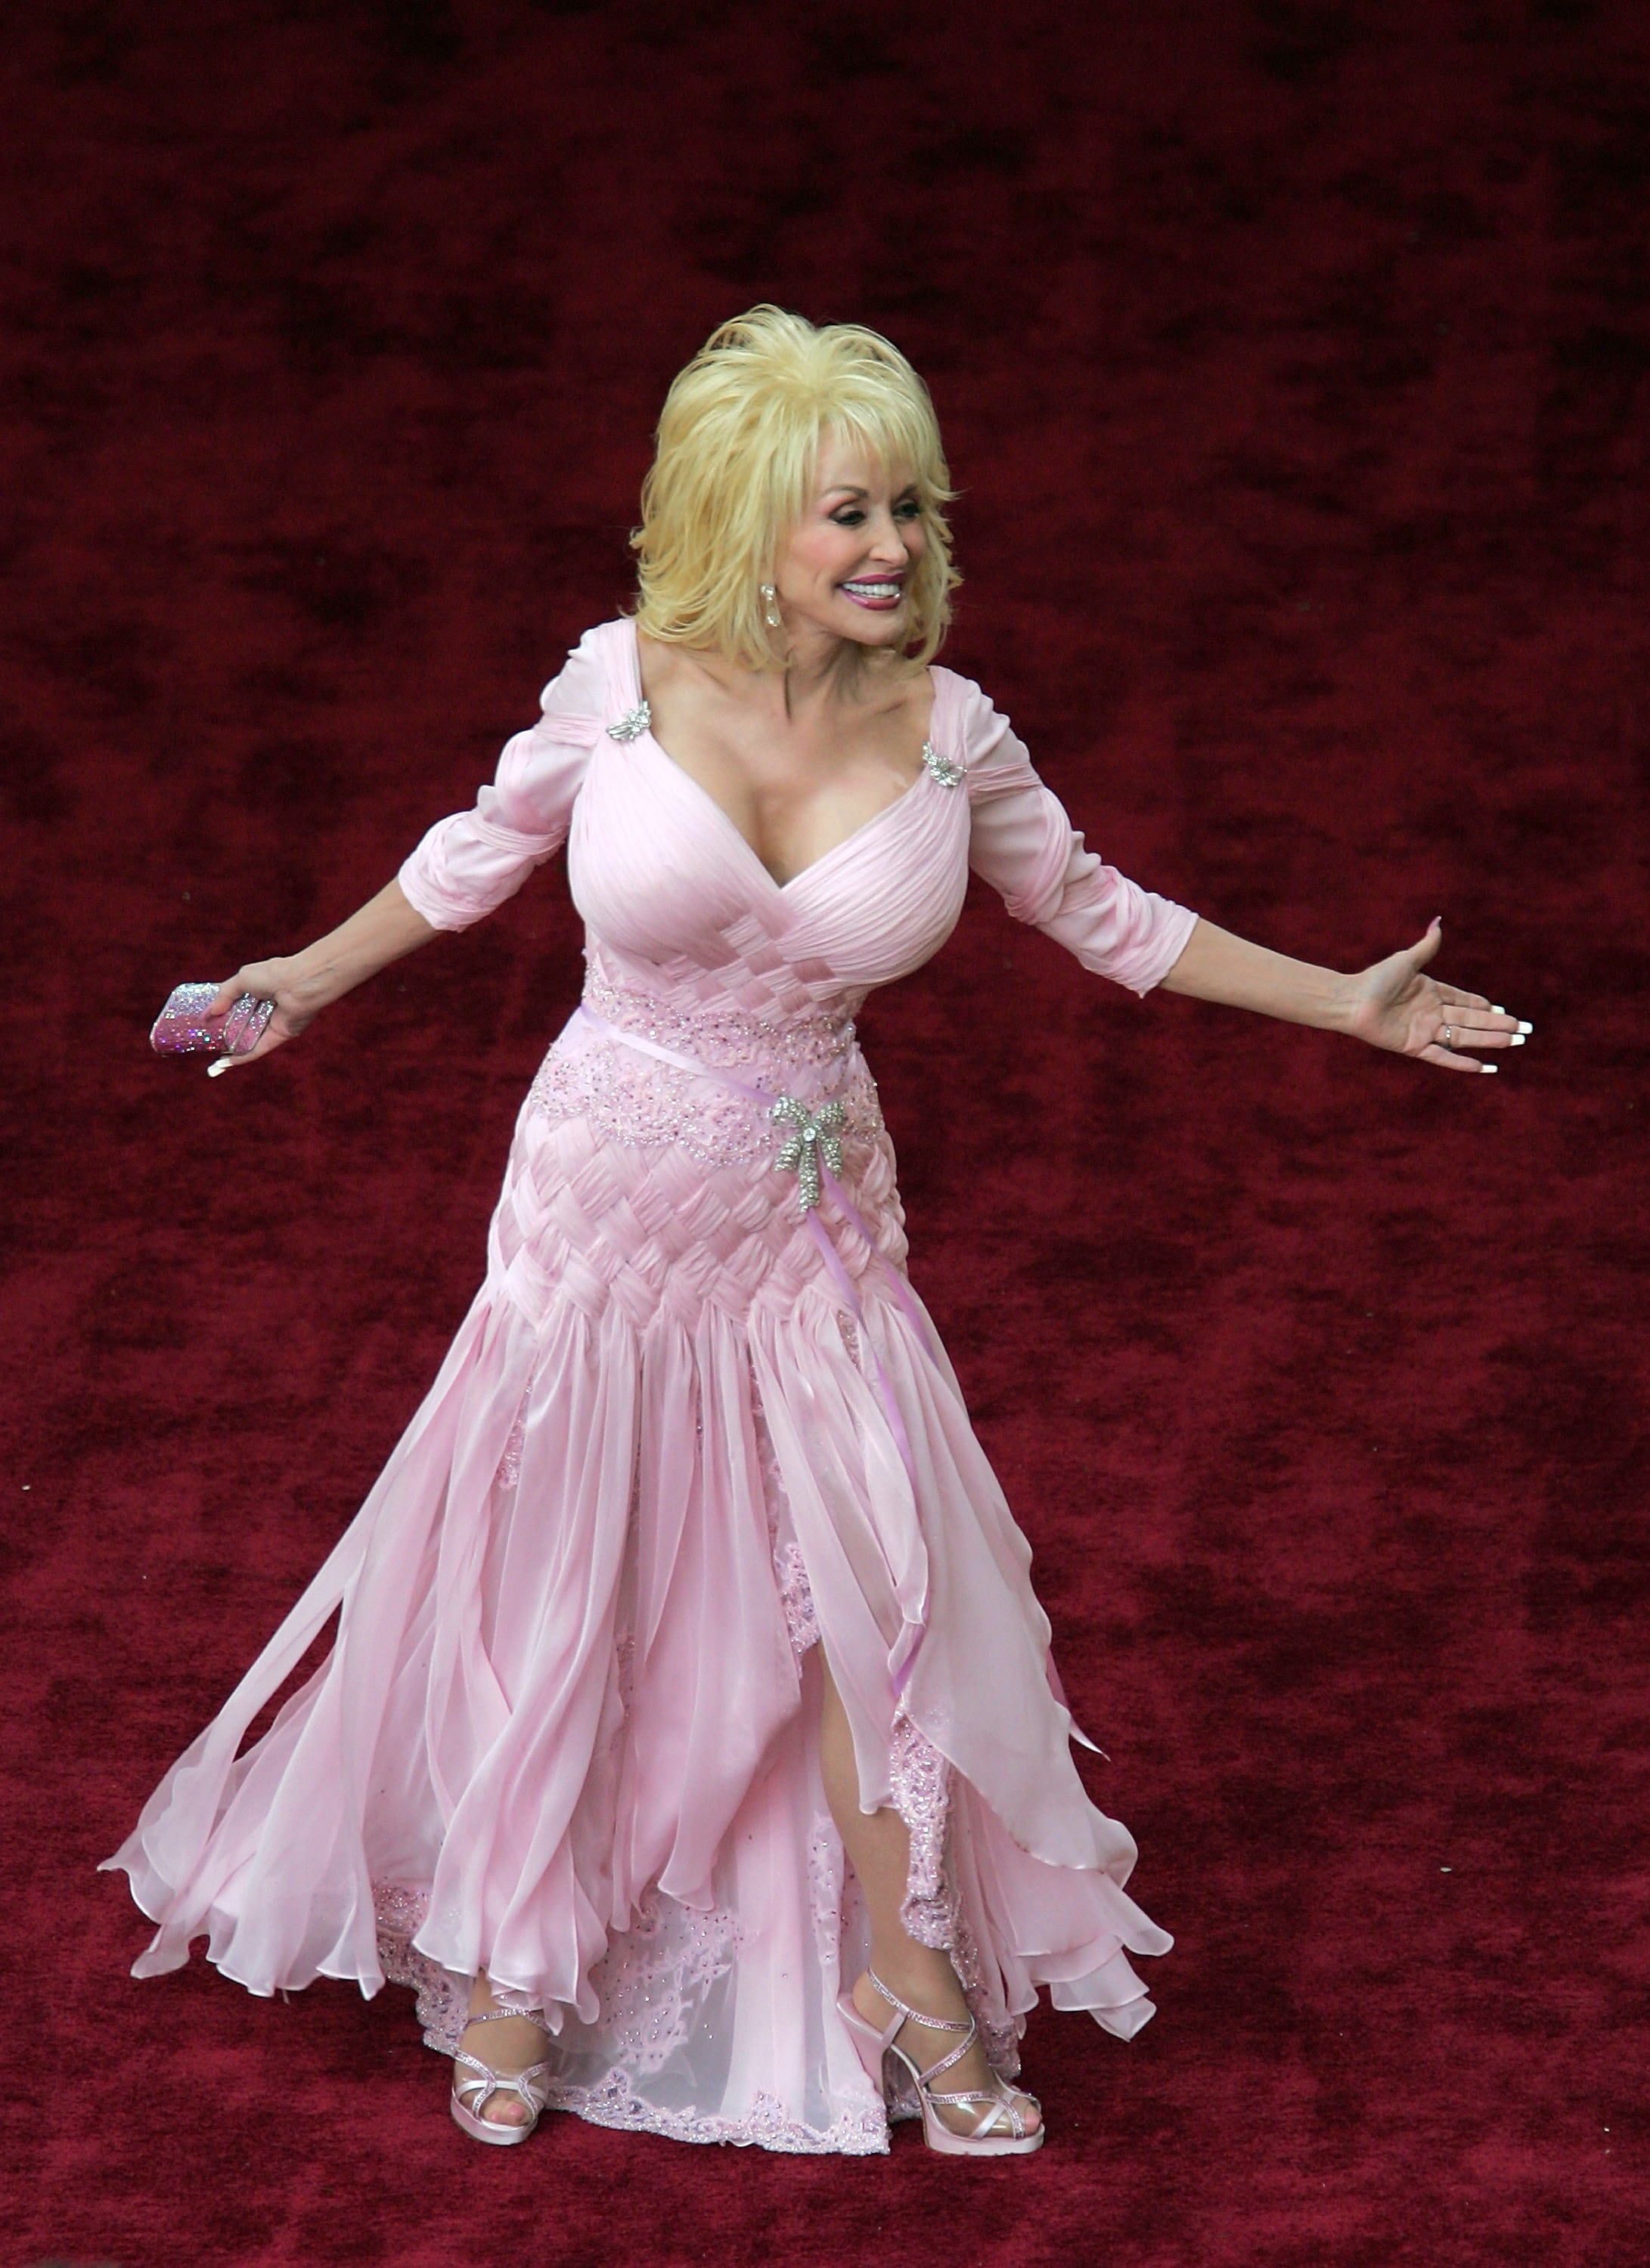 dolly parton cleavage photo